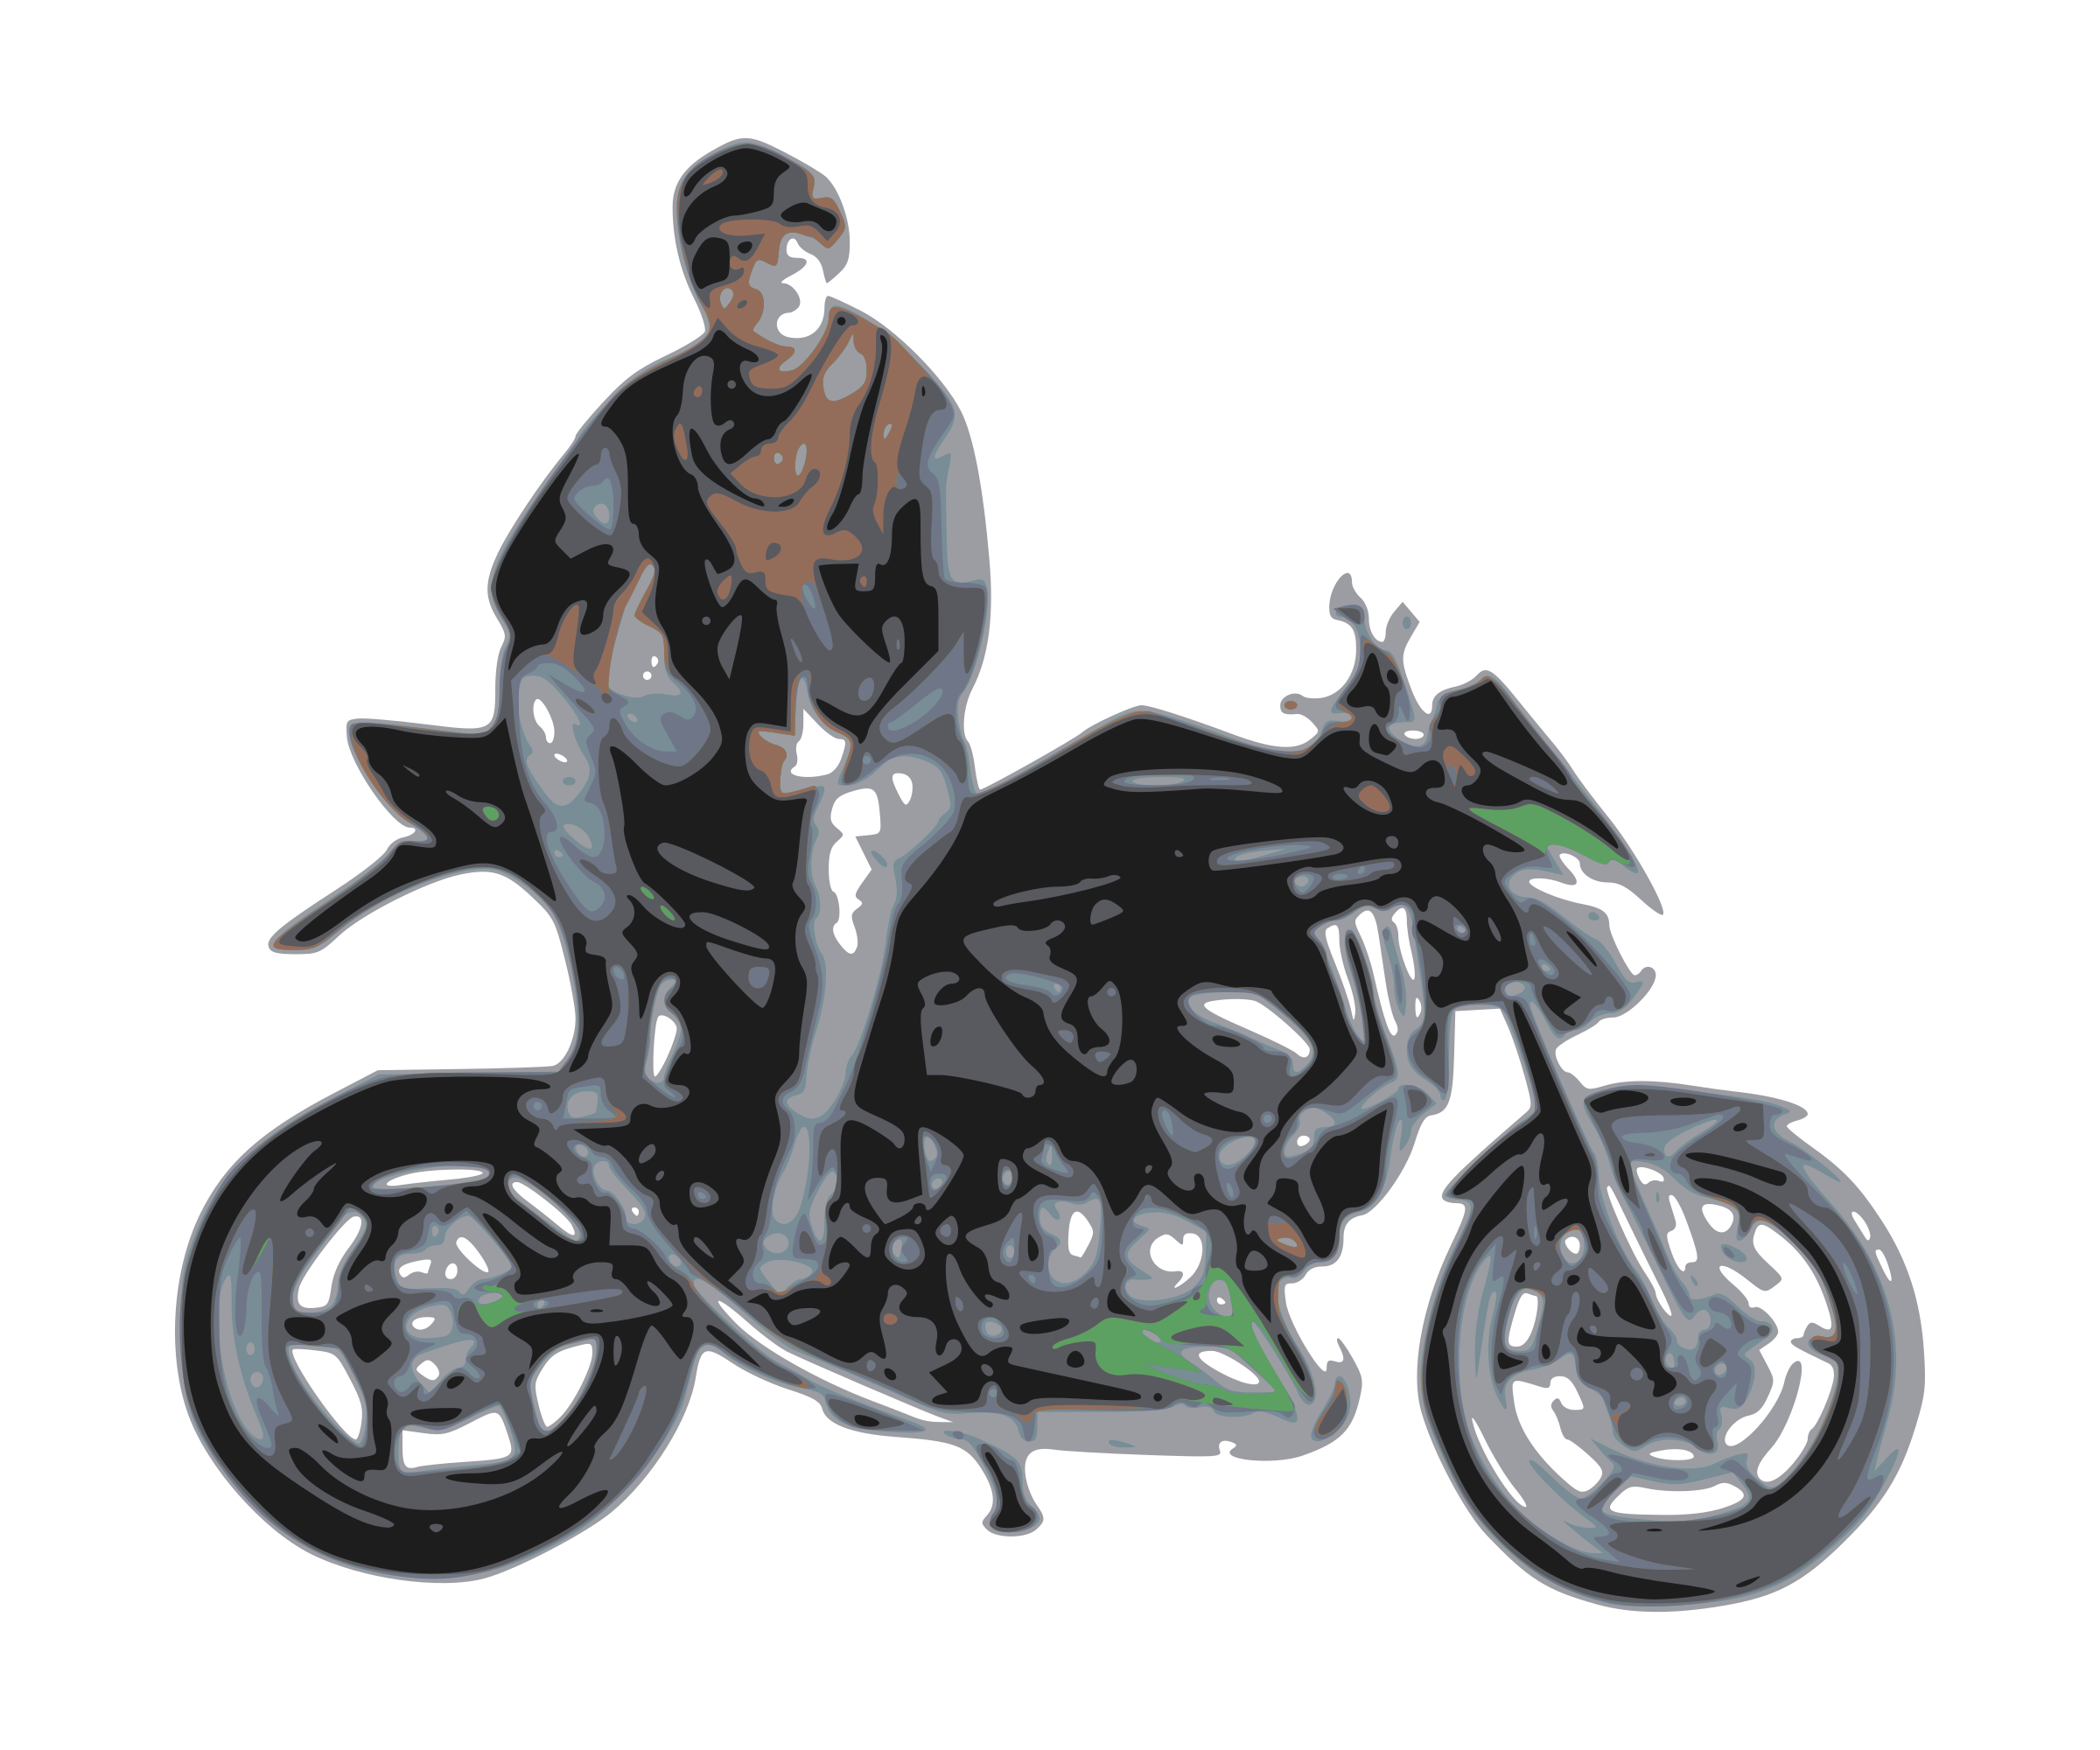 Motorcycle clipart motorcycle rider. With big image png